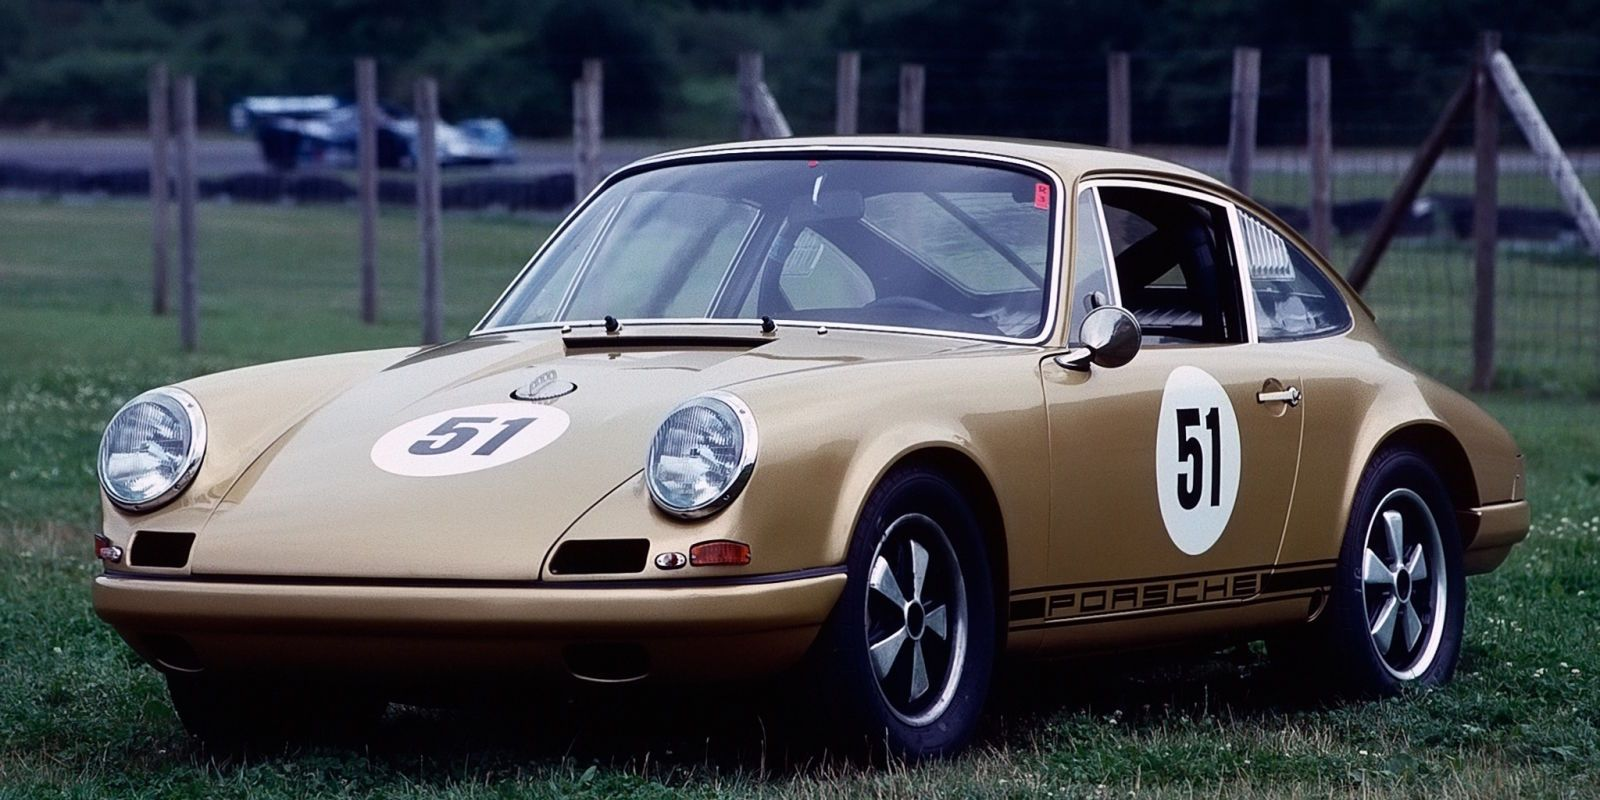 <p>In 1967, you could walk into a Porsche dealer and buy a 911 S, but the R was a much different proposition. Only 23 were built, featuring ultralight fiberglass bodies and 50 more horsepower than the 911 S. Its spirt lives on today in the 2016 911 R.</p>